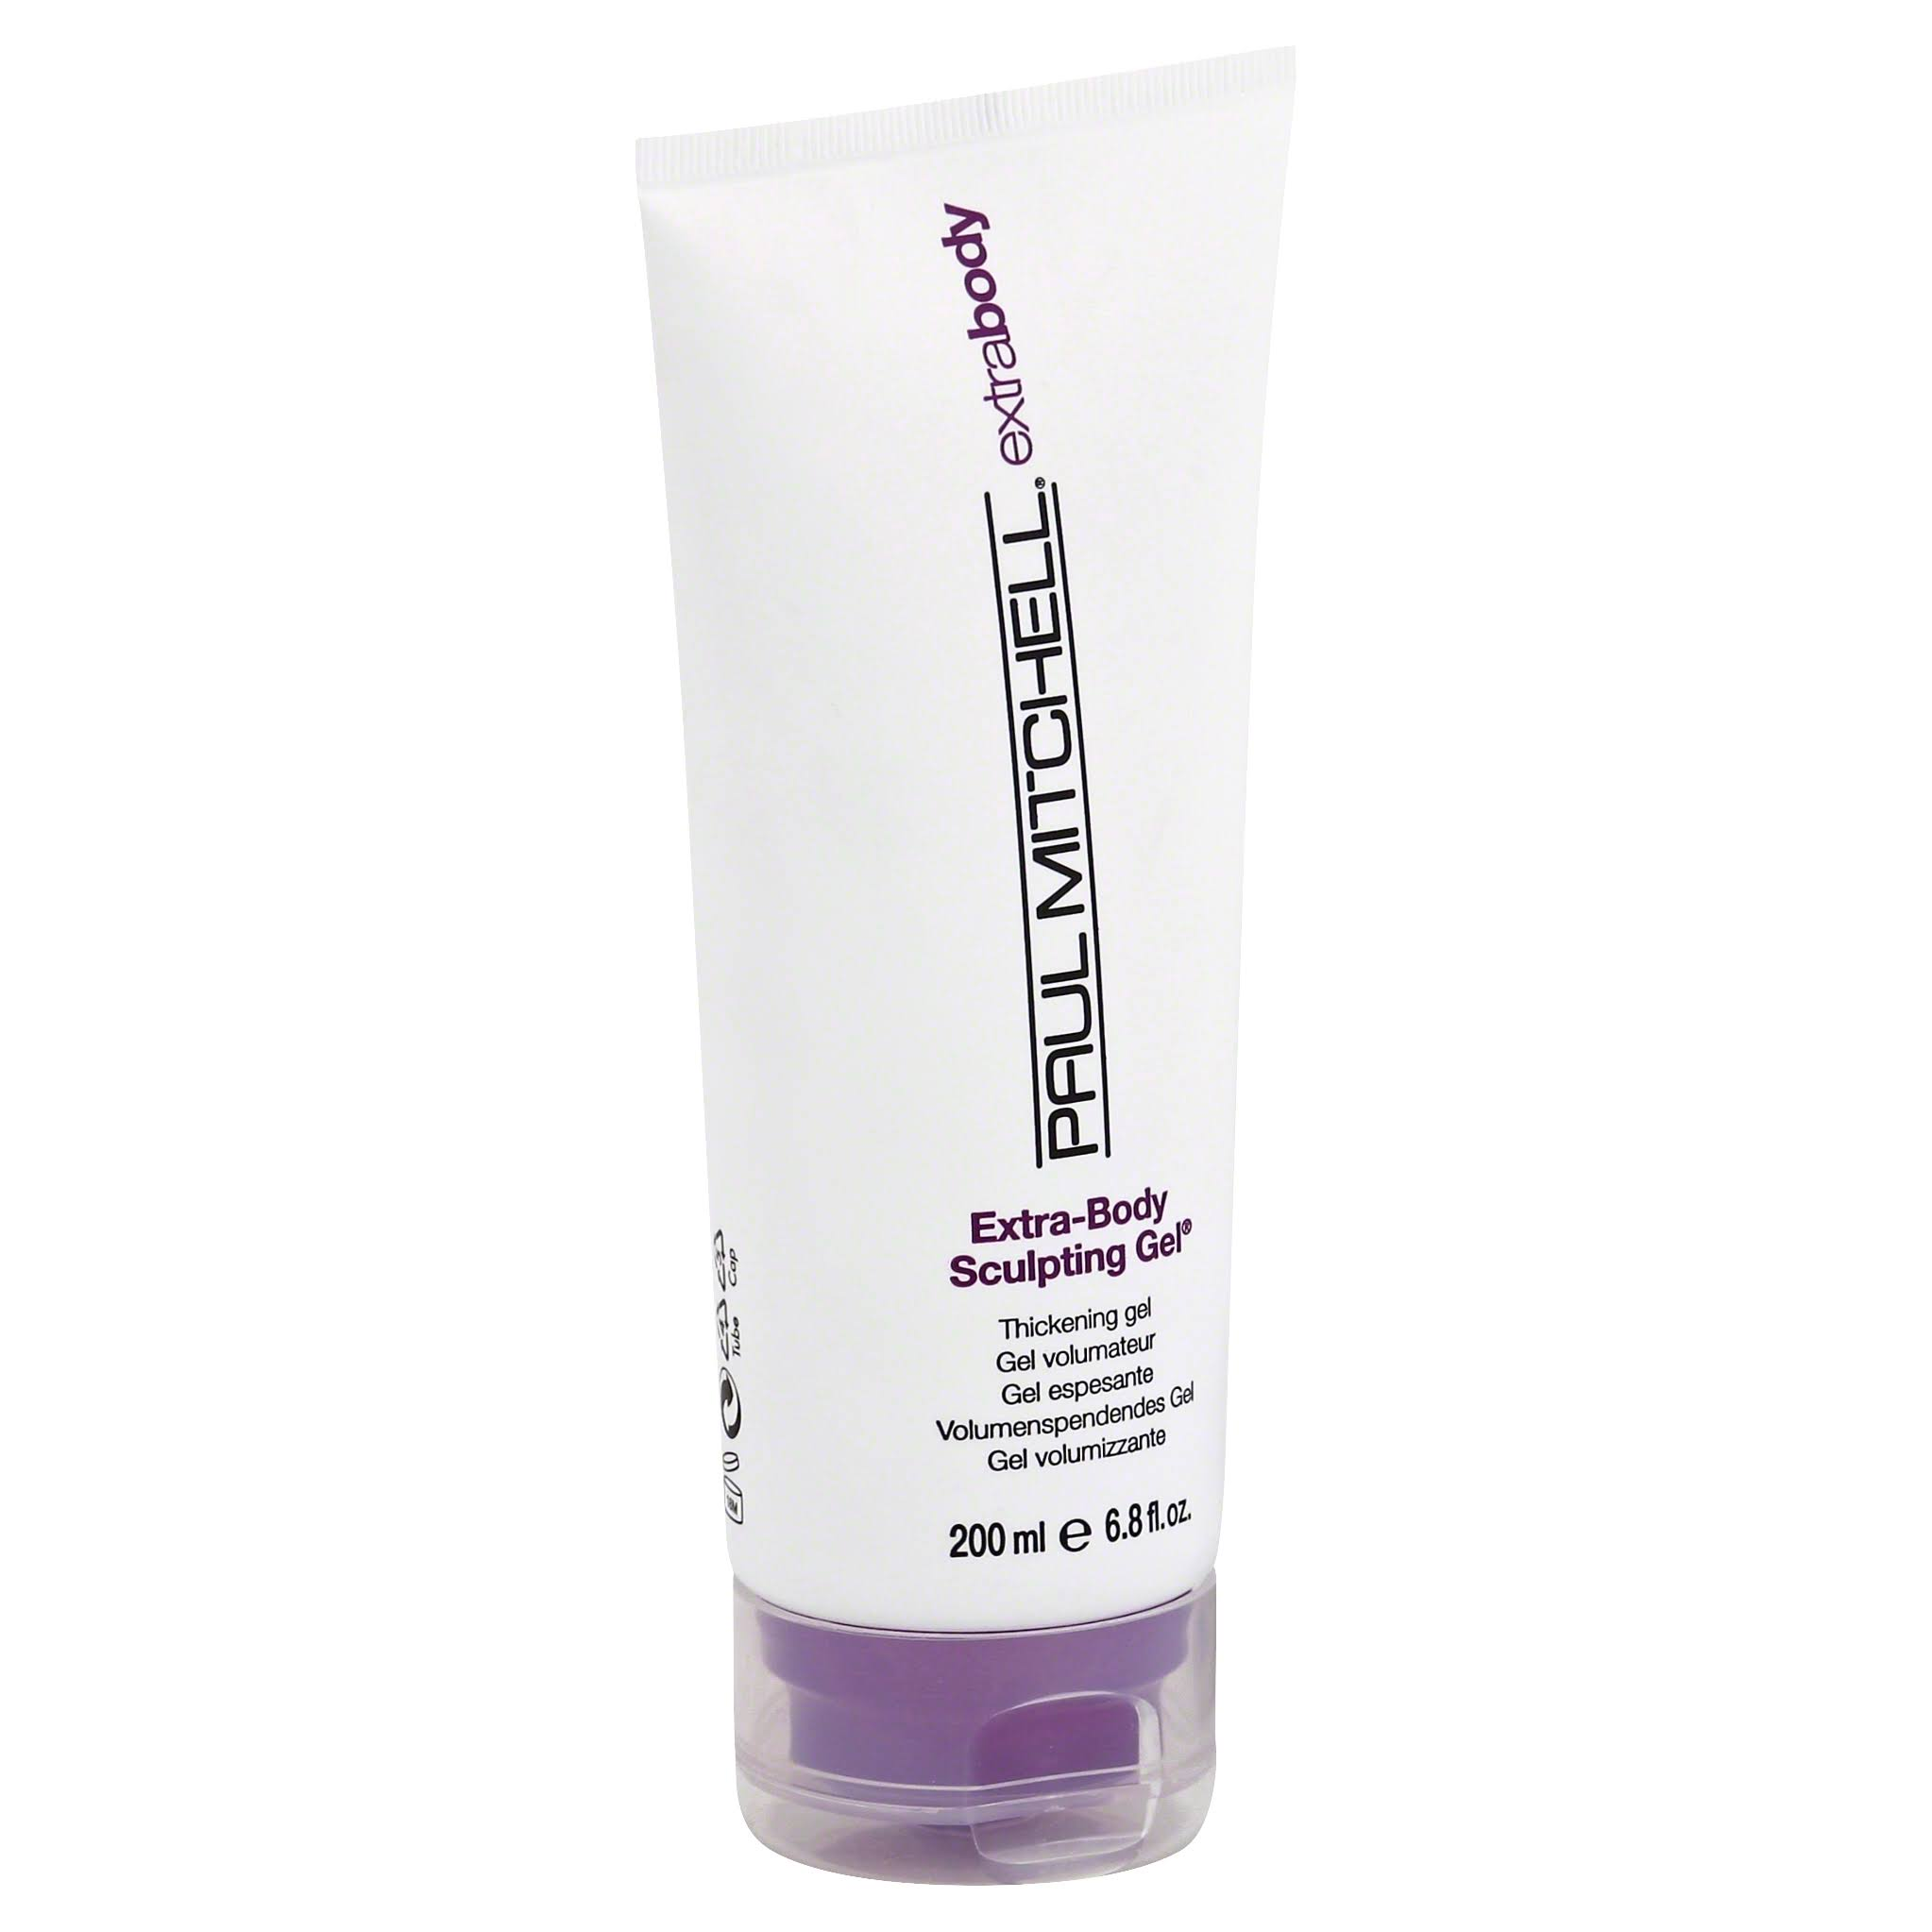 Paul Mitchell Extra Body Sculpting Gel - 200ml